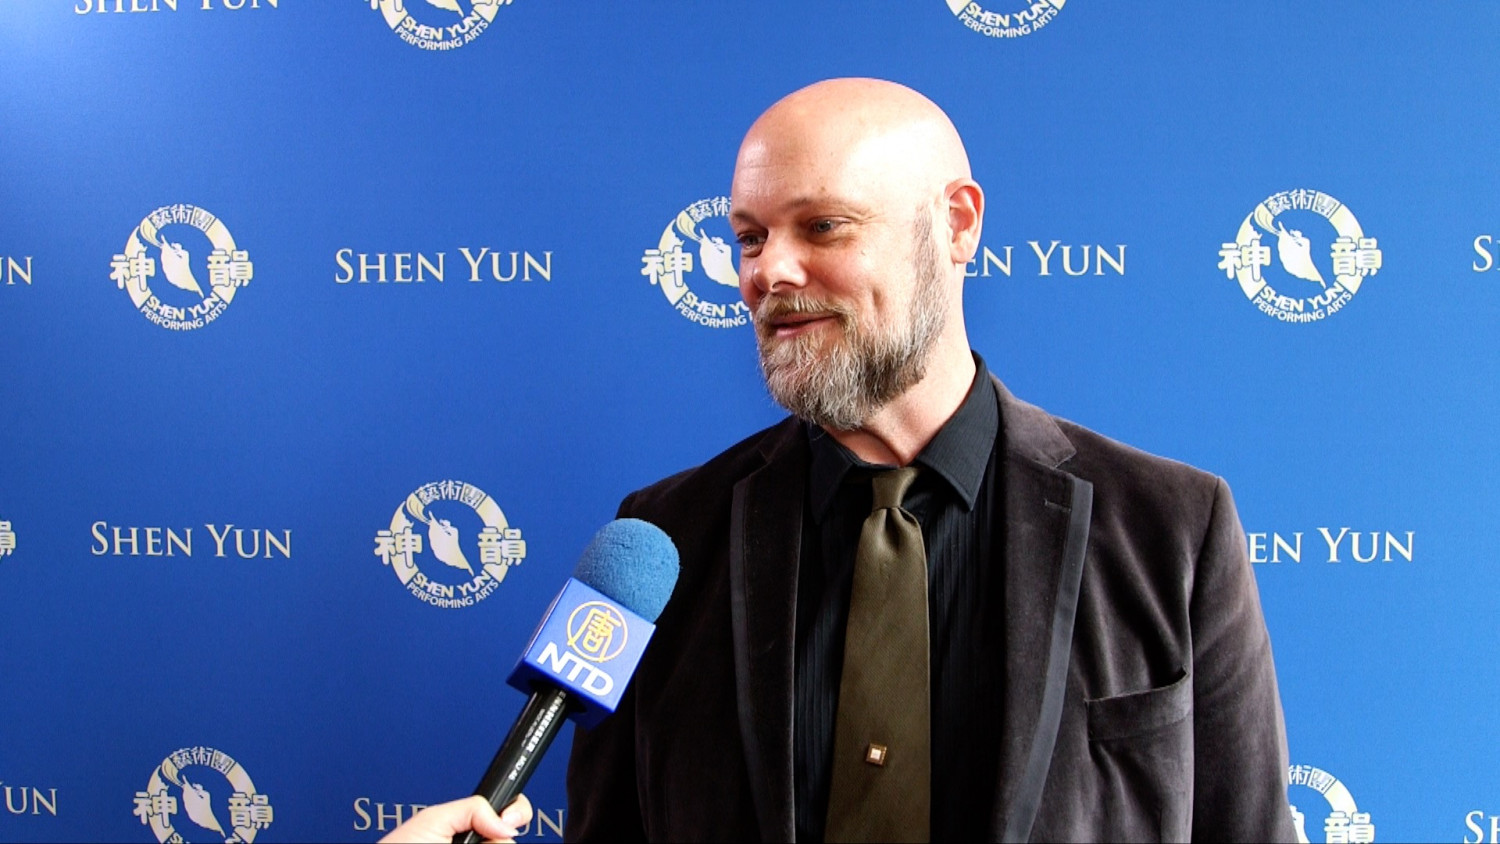 COO Touched by Shen Yun's Honesty